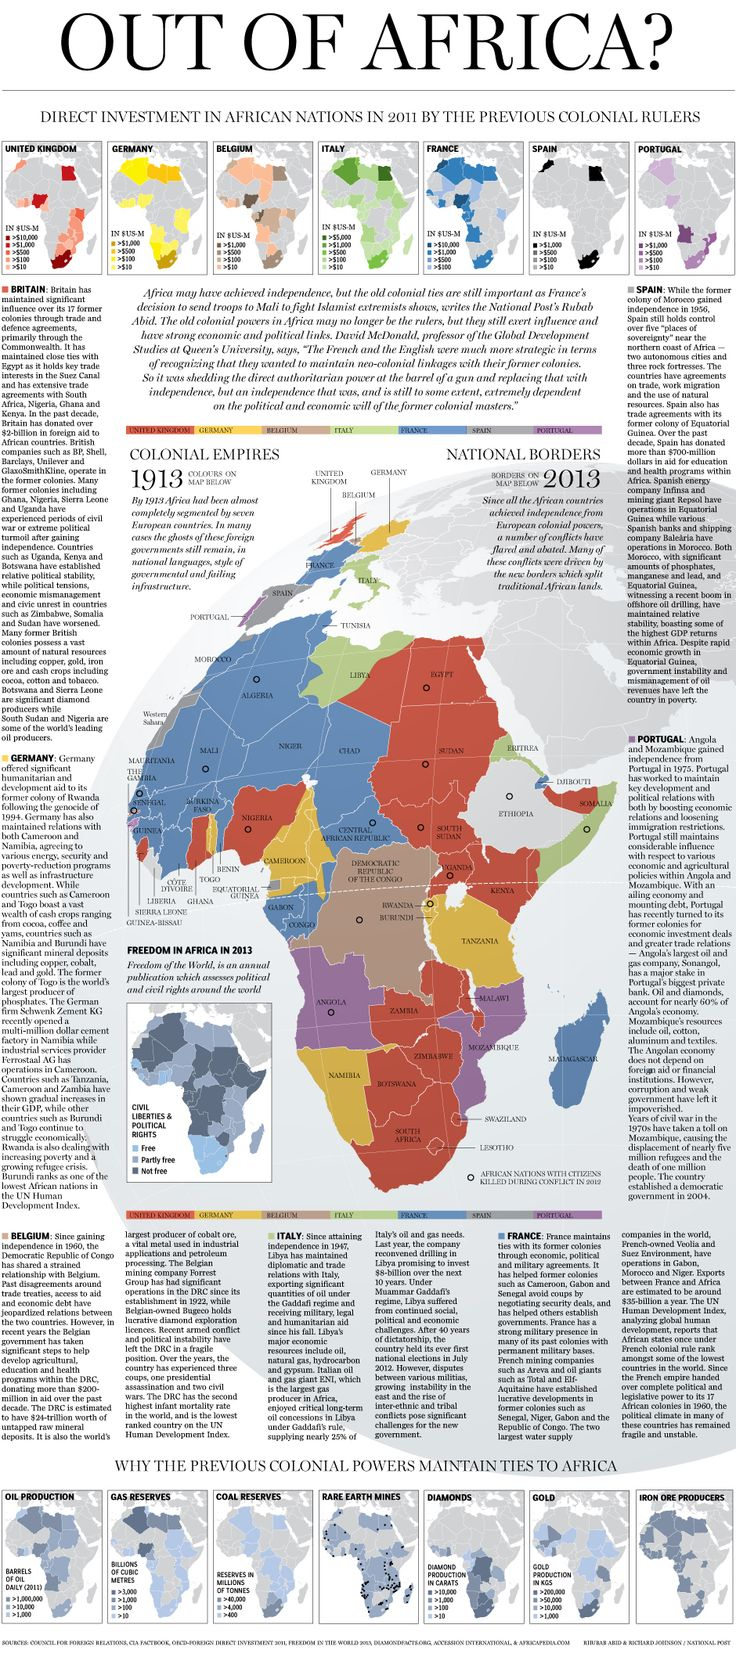 Best Africa Unit Images On Pinterest African History - What does this map tells us about african independence